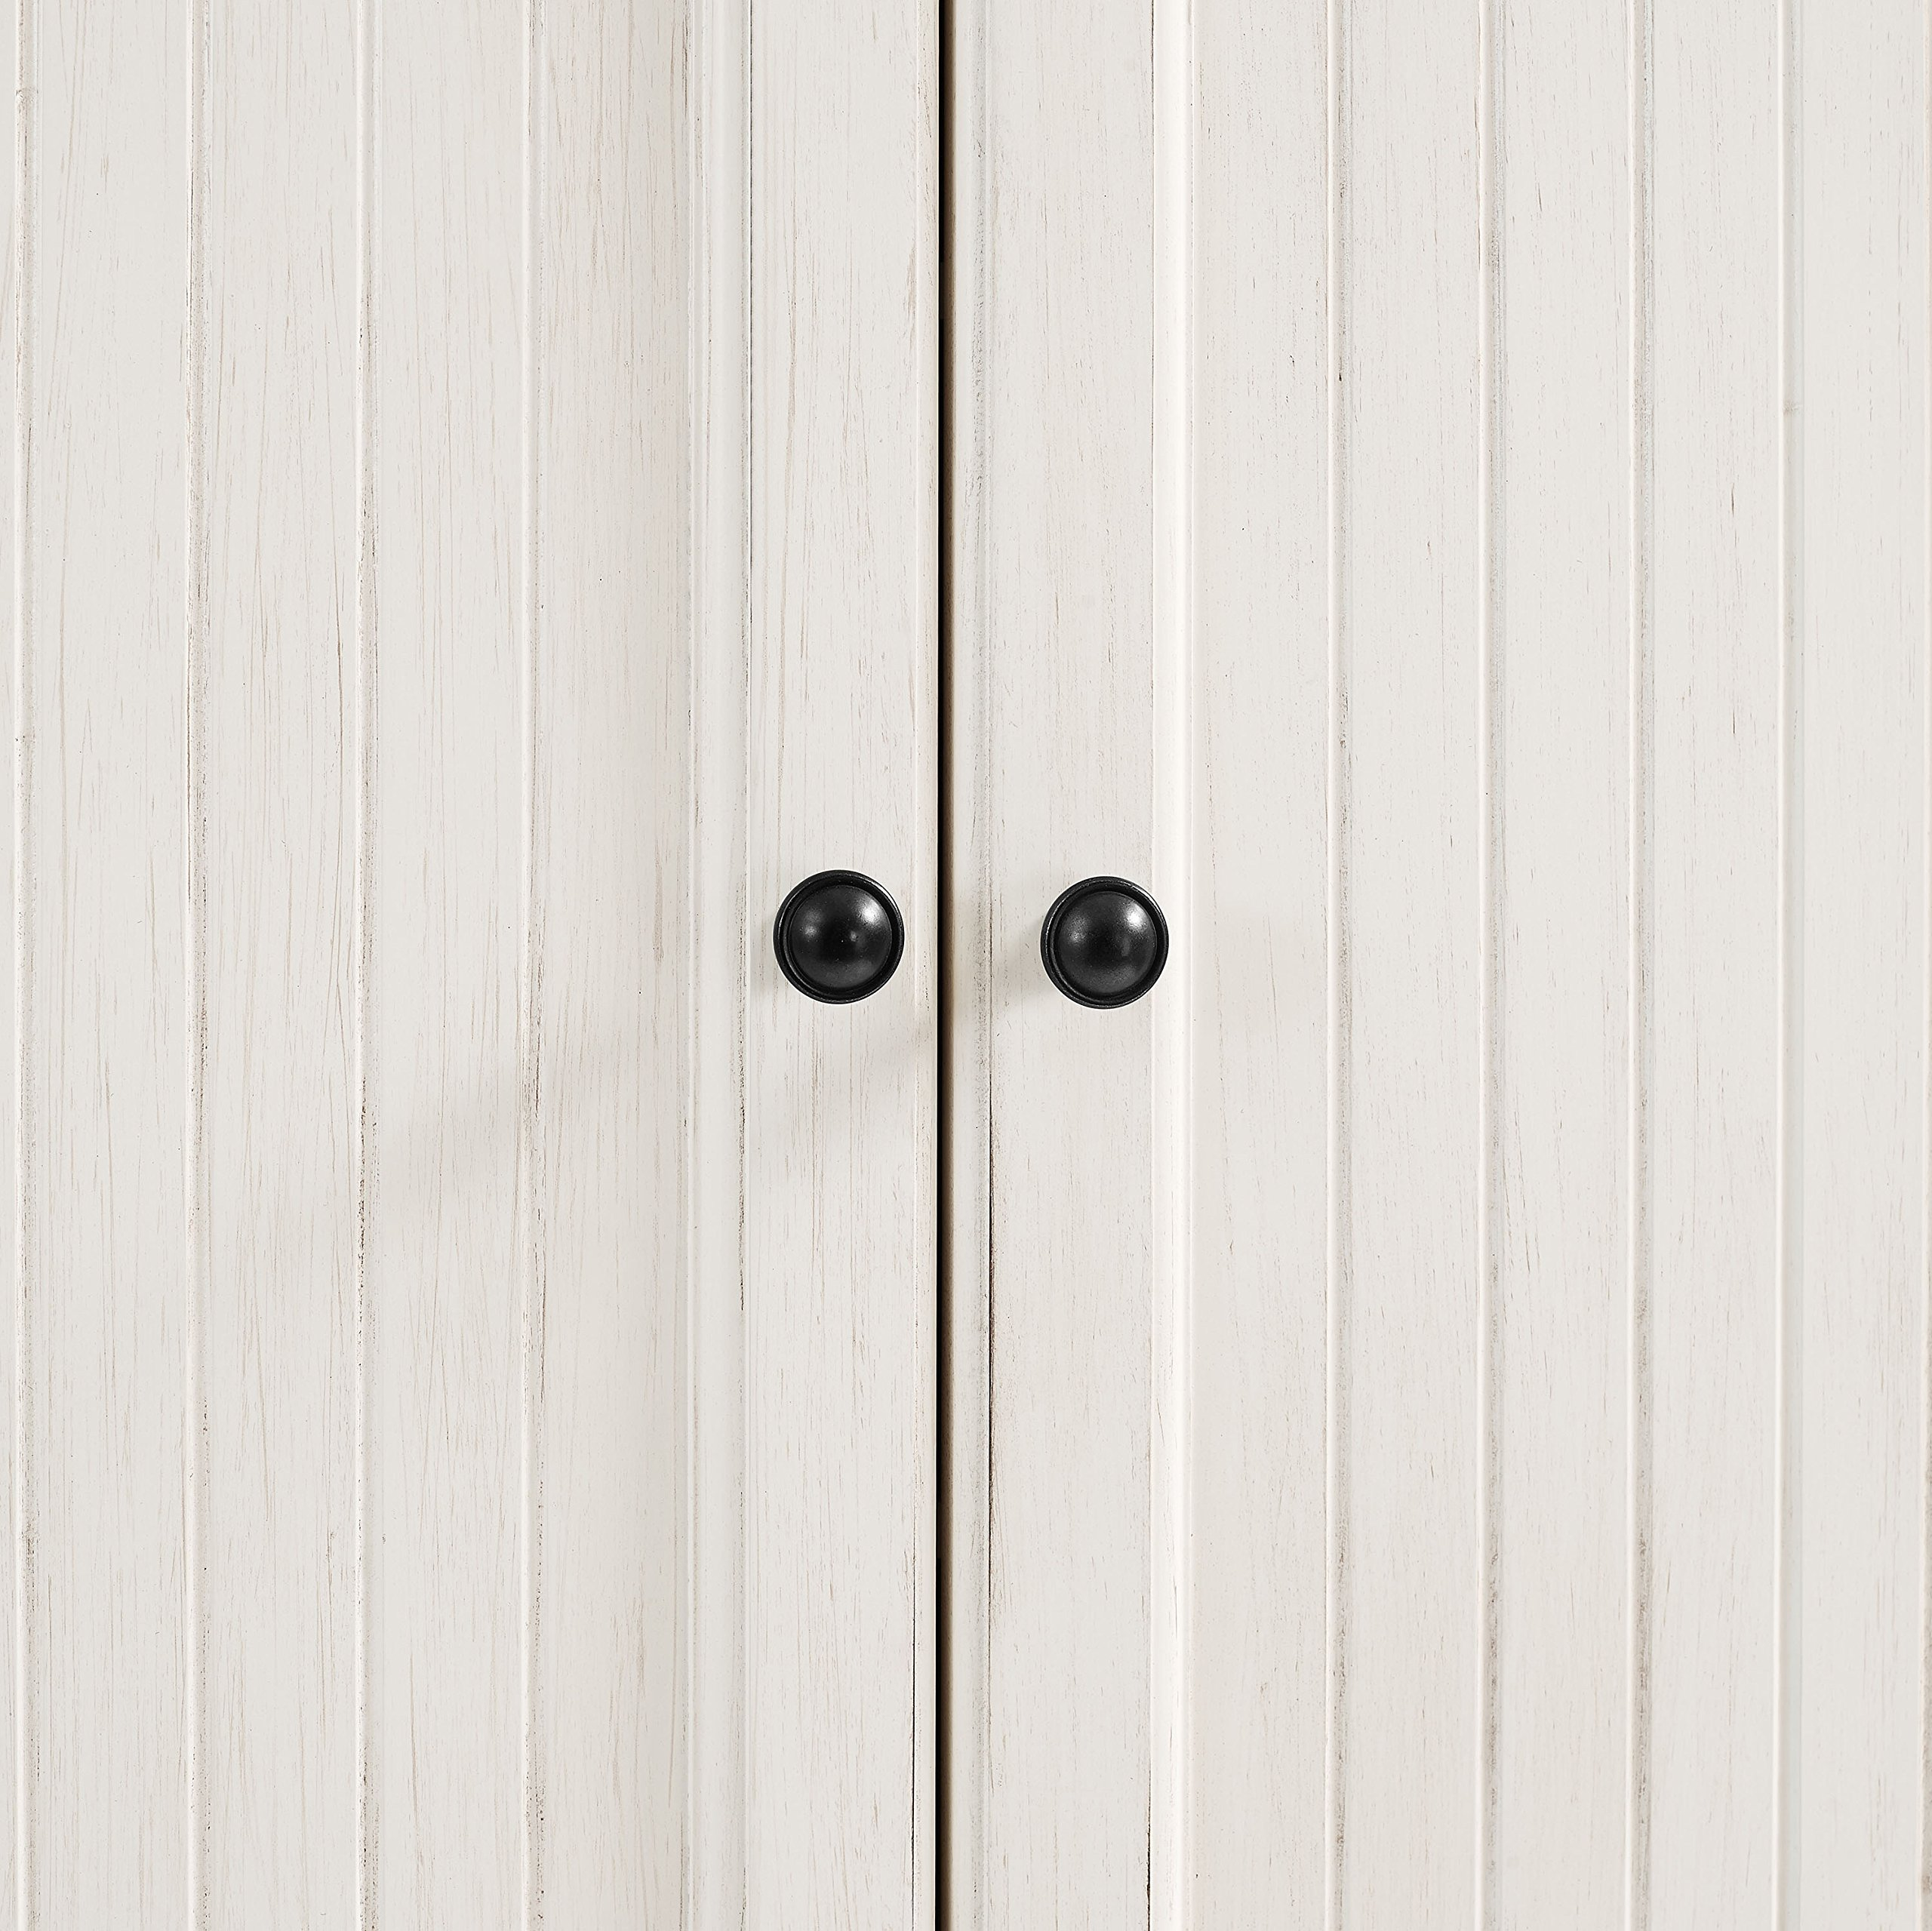 Crosley Furniture Seaside Kitchen Pantry Cabinet - Distressed White by Crosley Furniture (Image #8)